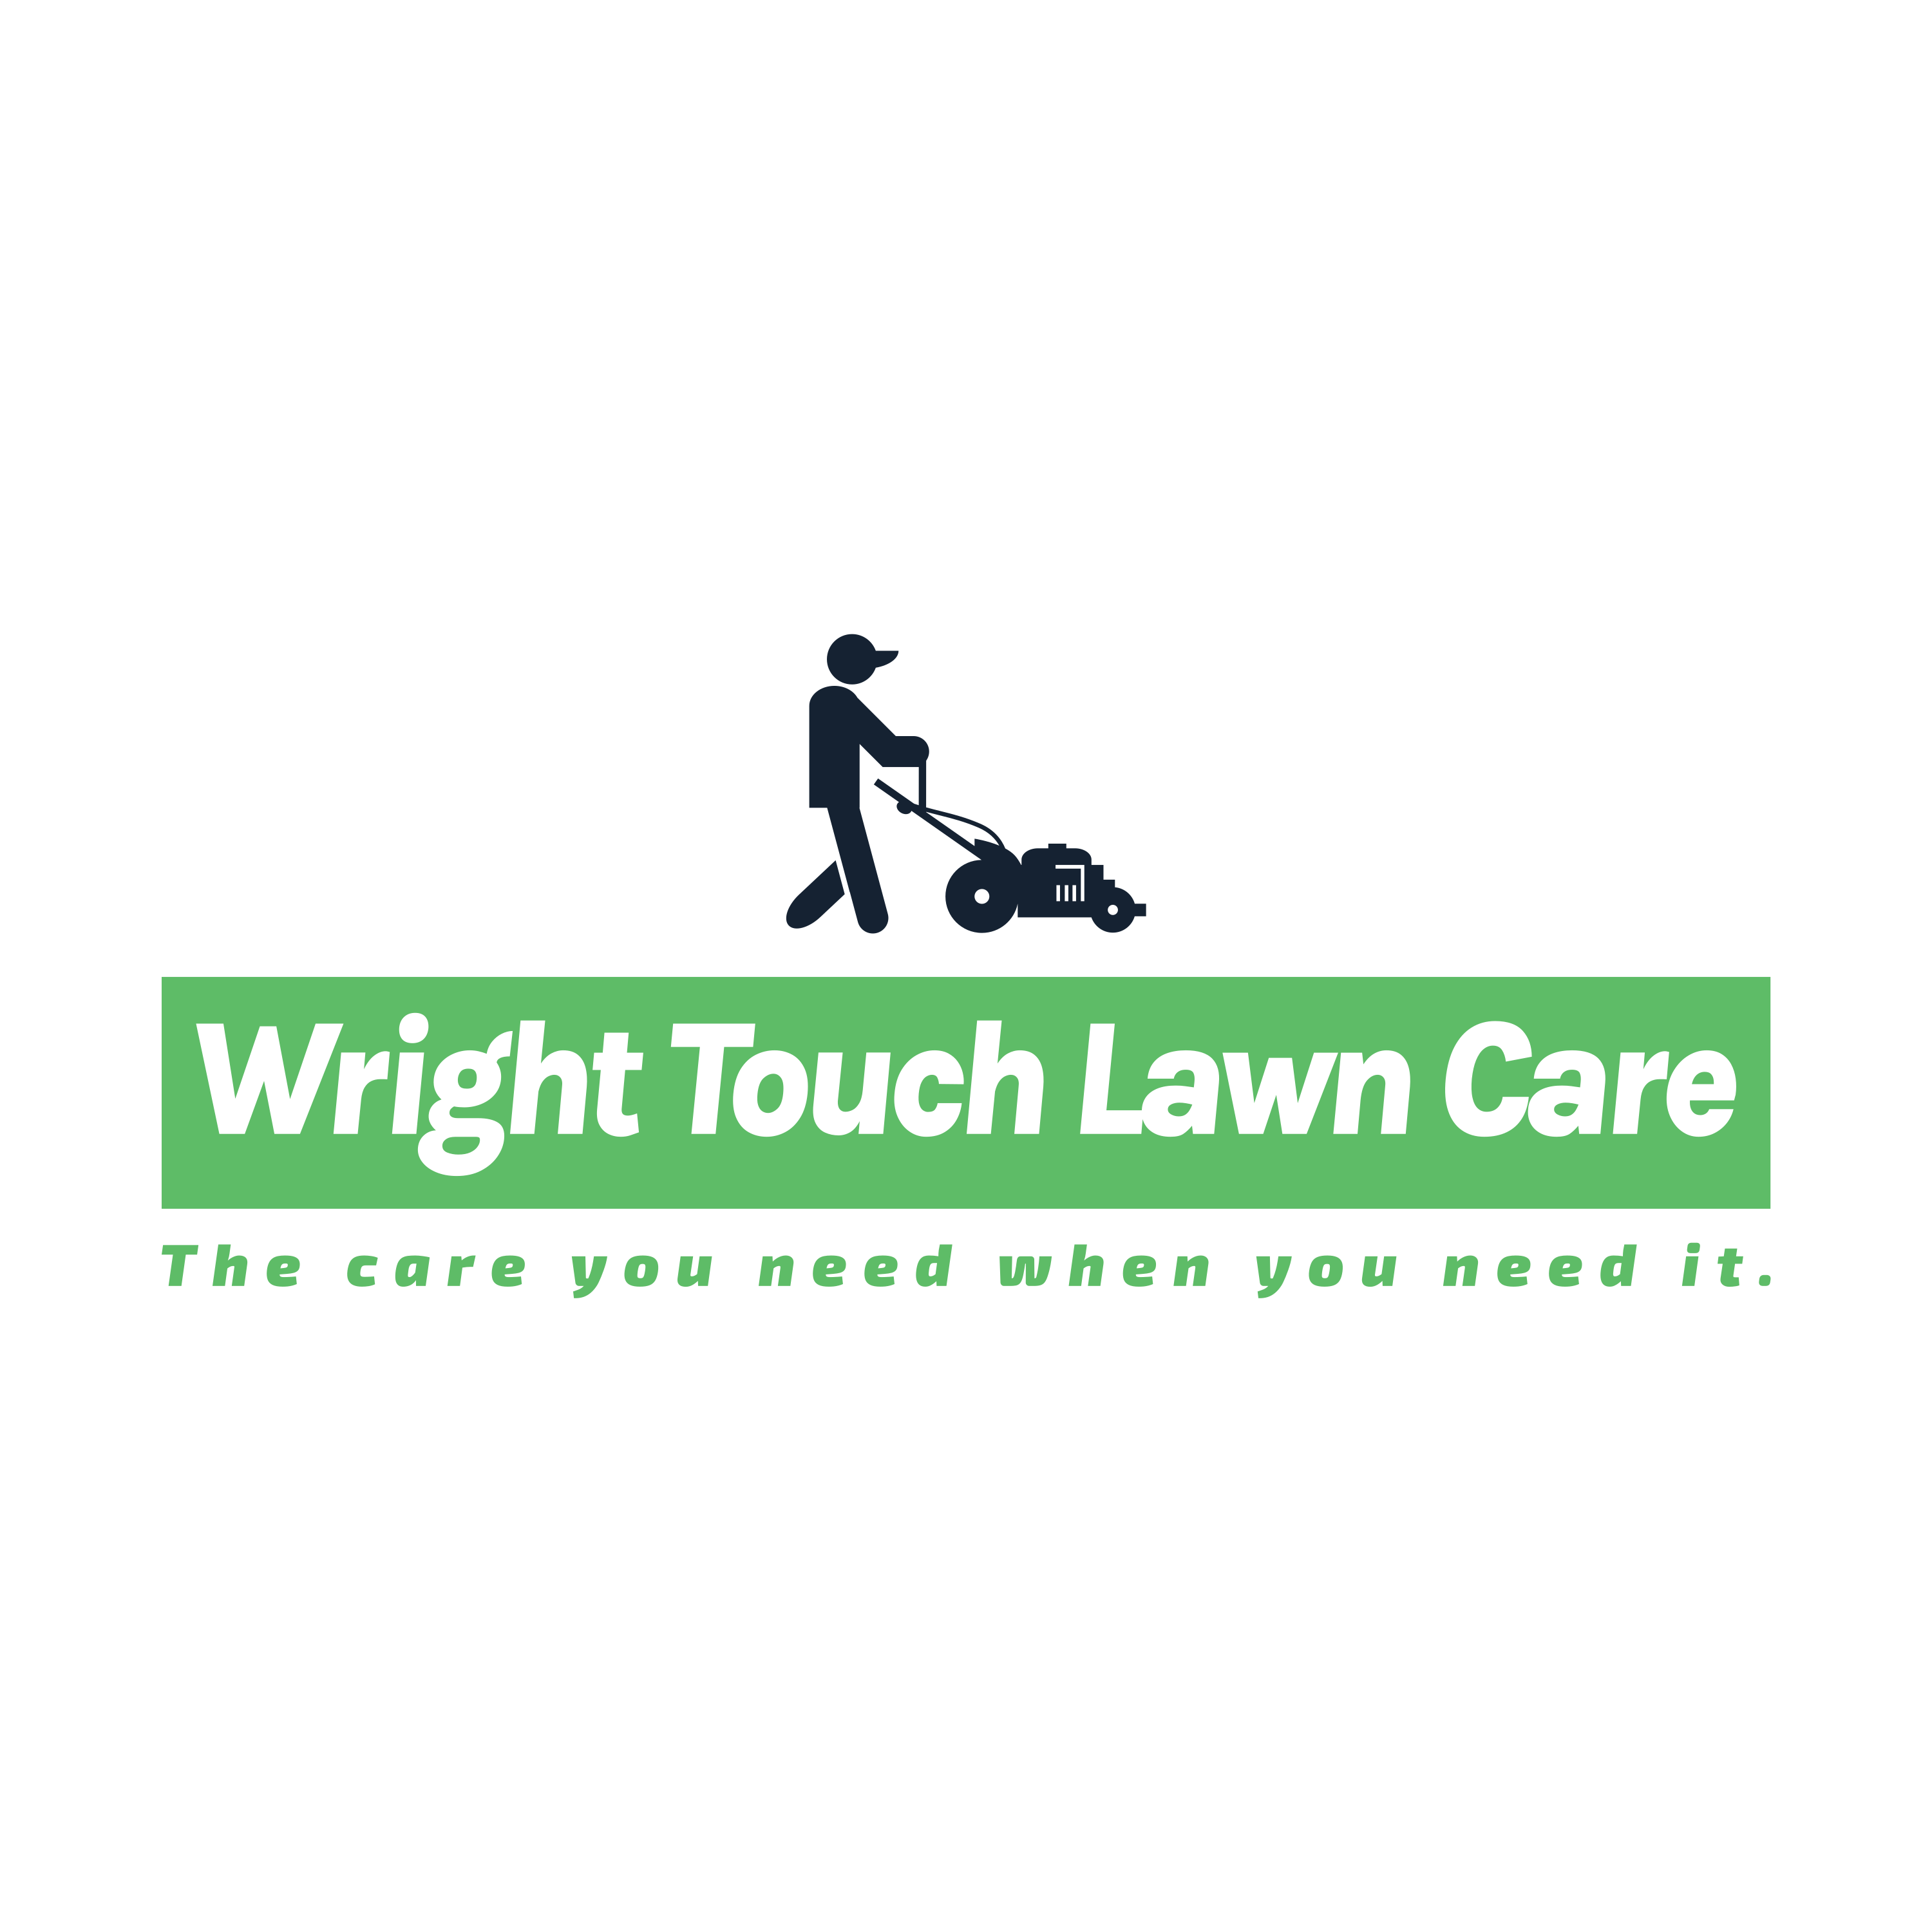 Wright Touch Lawn Care